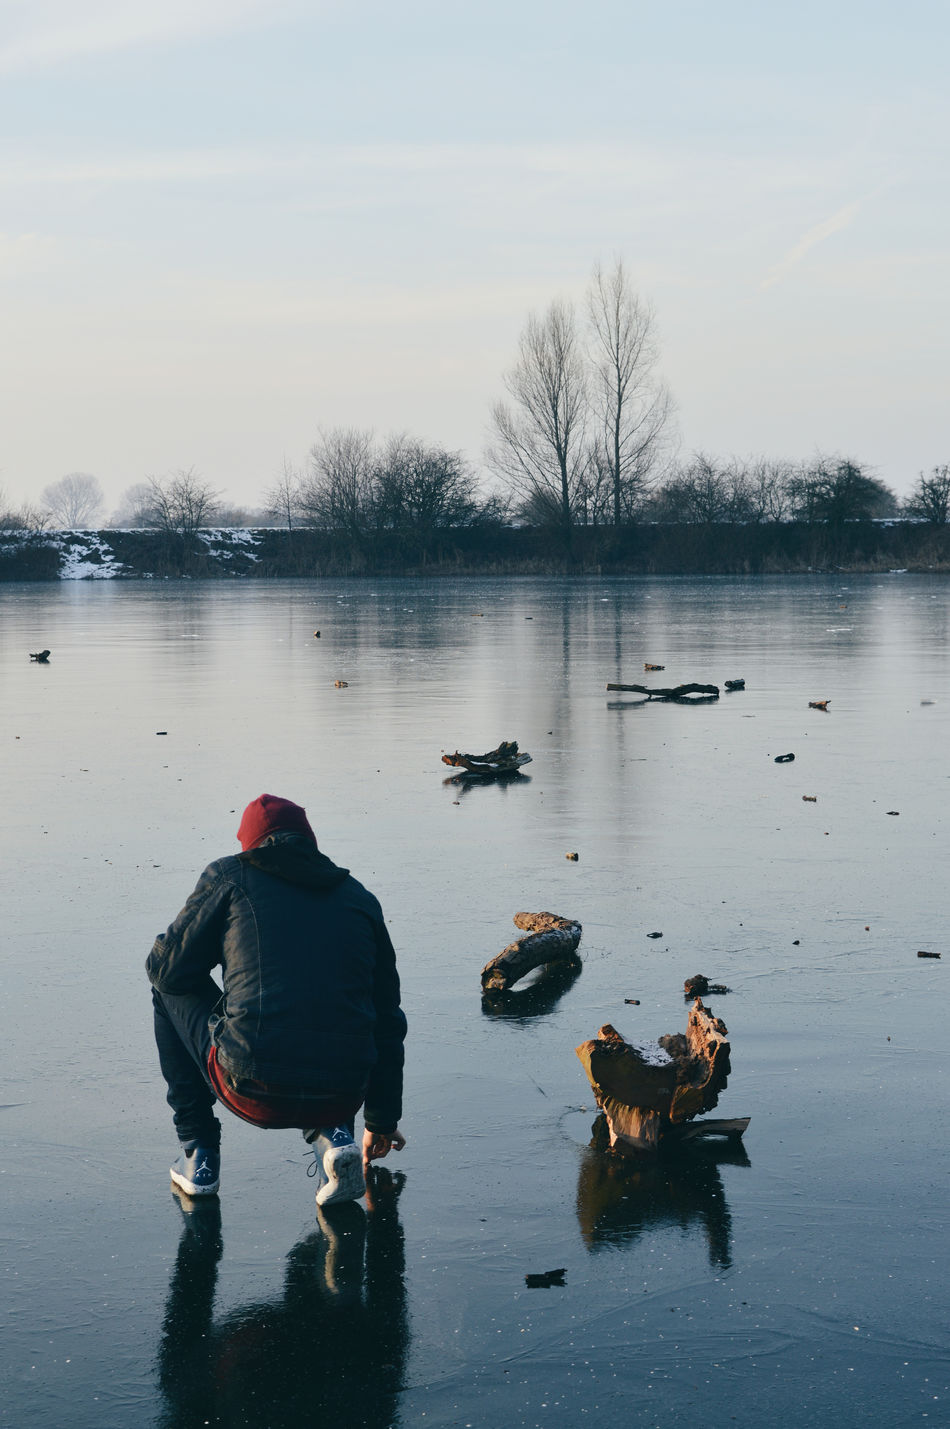 Adapted To The City Reflection Water Nature Outdoors Beauty In Nature People Sky Ice Nature Ice Winter My Man Den Bosch Fresh On Eyeem